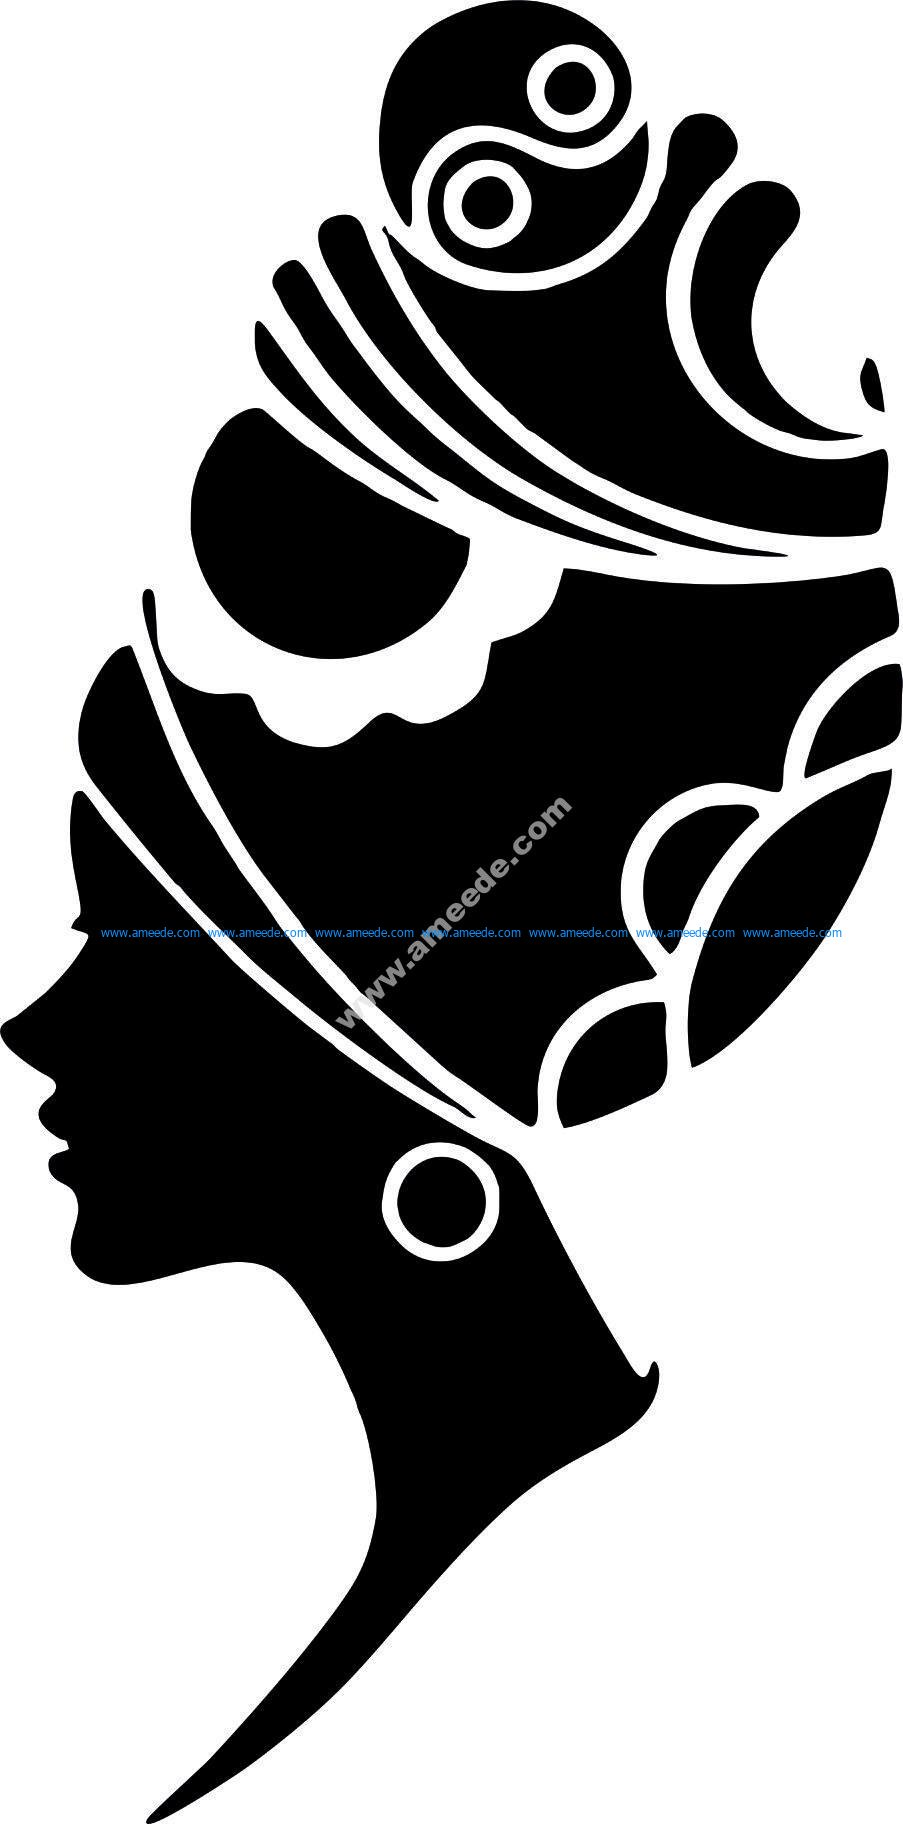 Woman Face Silhouette Vector Art jpg Image